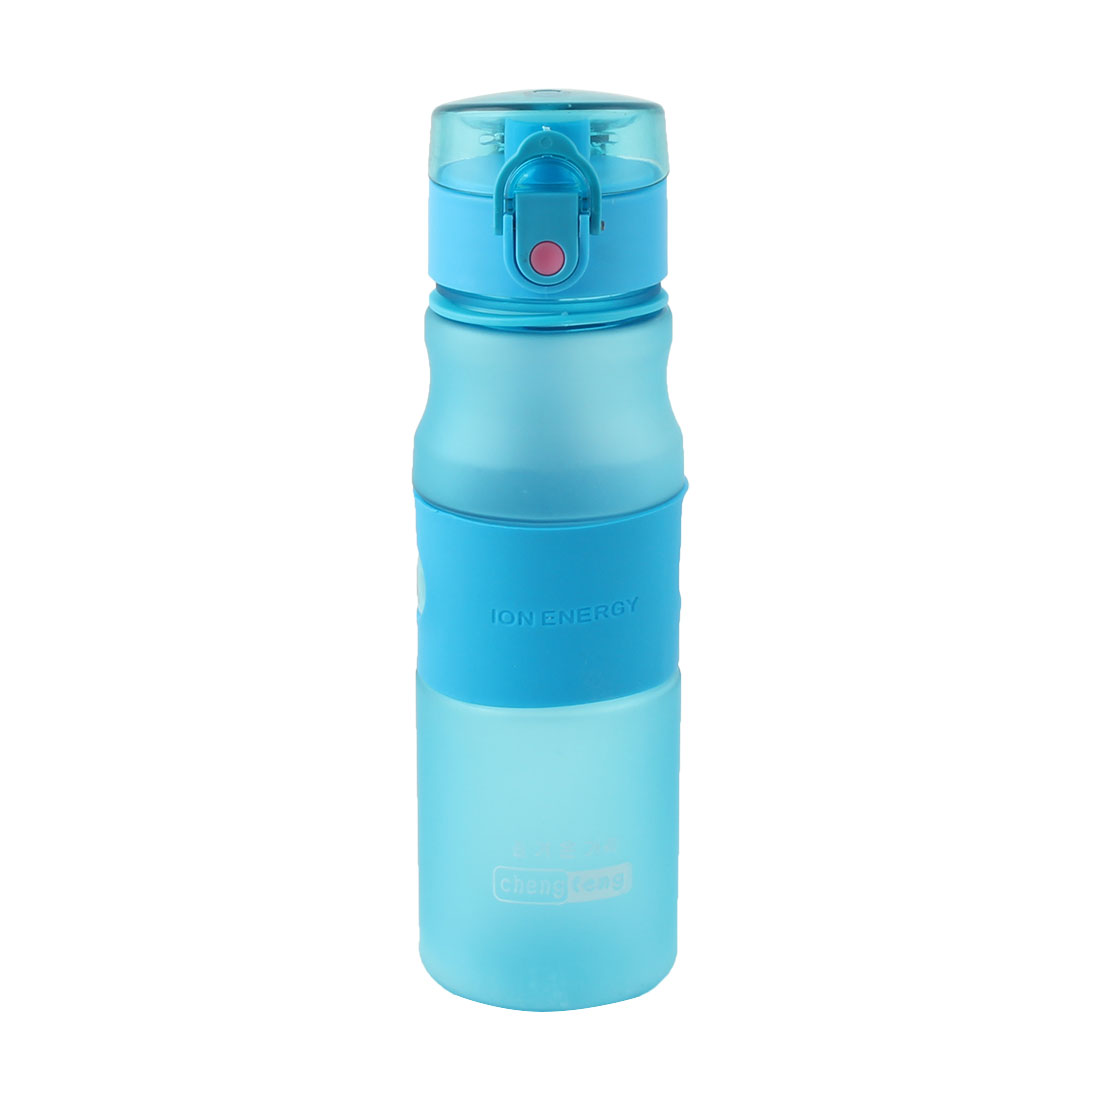 Travel Plastic Frosted Tea Juice Cup Handy Sports Drinking Straw Water Bottle Blue 550ml